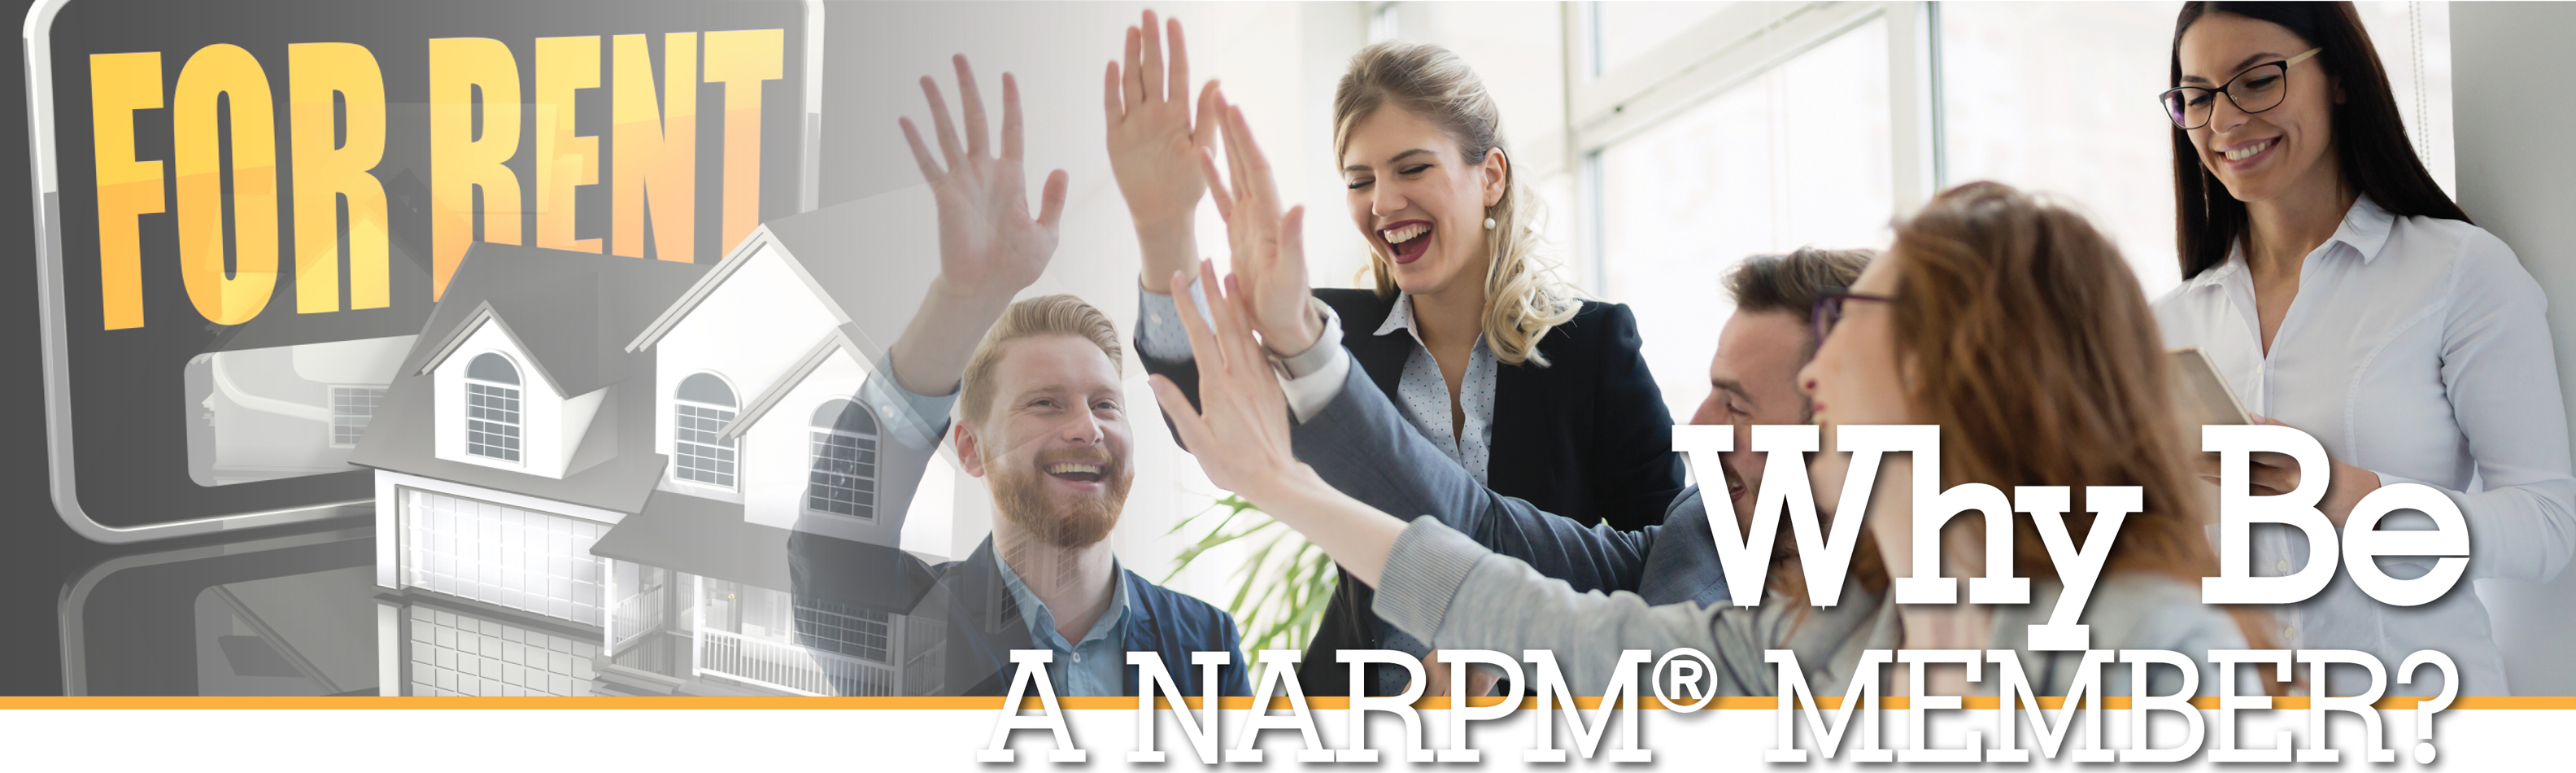 Why Be a NARPM Member